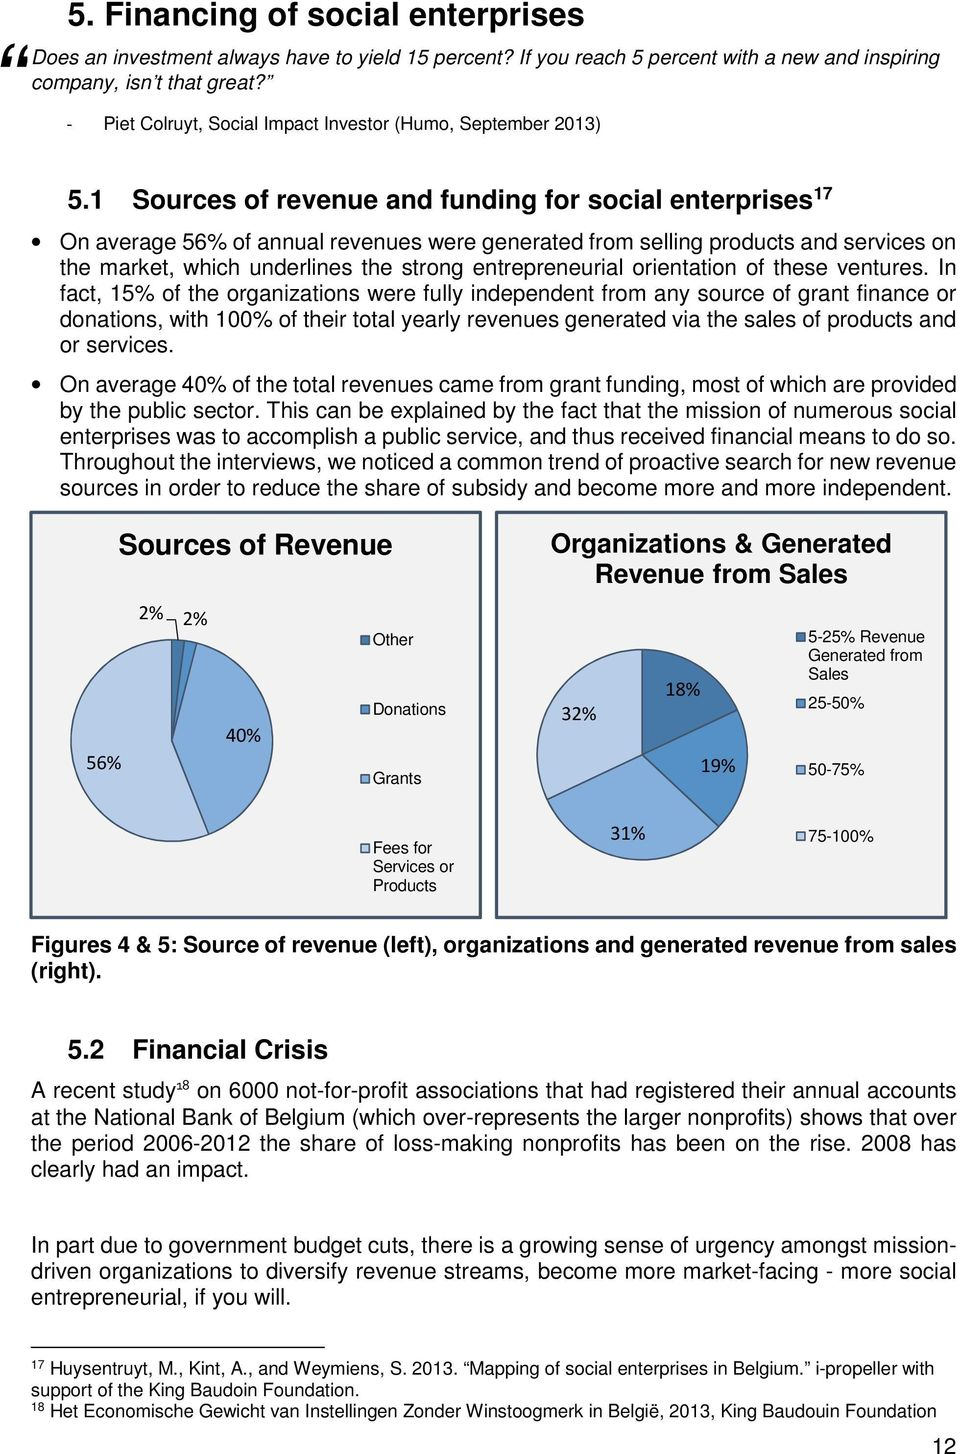 1 Sources of revenue and funding for social enterprises 17 On average 56% of annual revenues were generated from selling products and services on the market, which underlines the strong